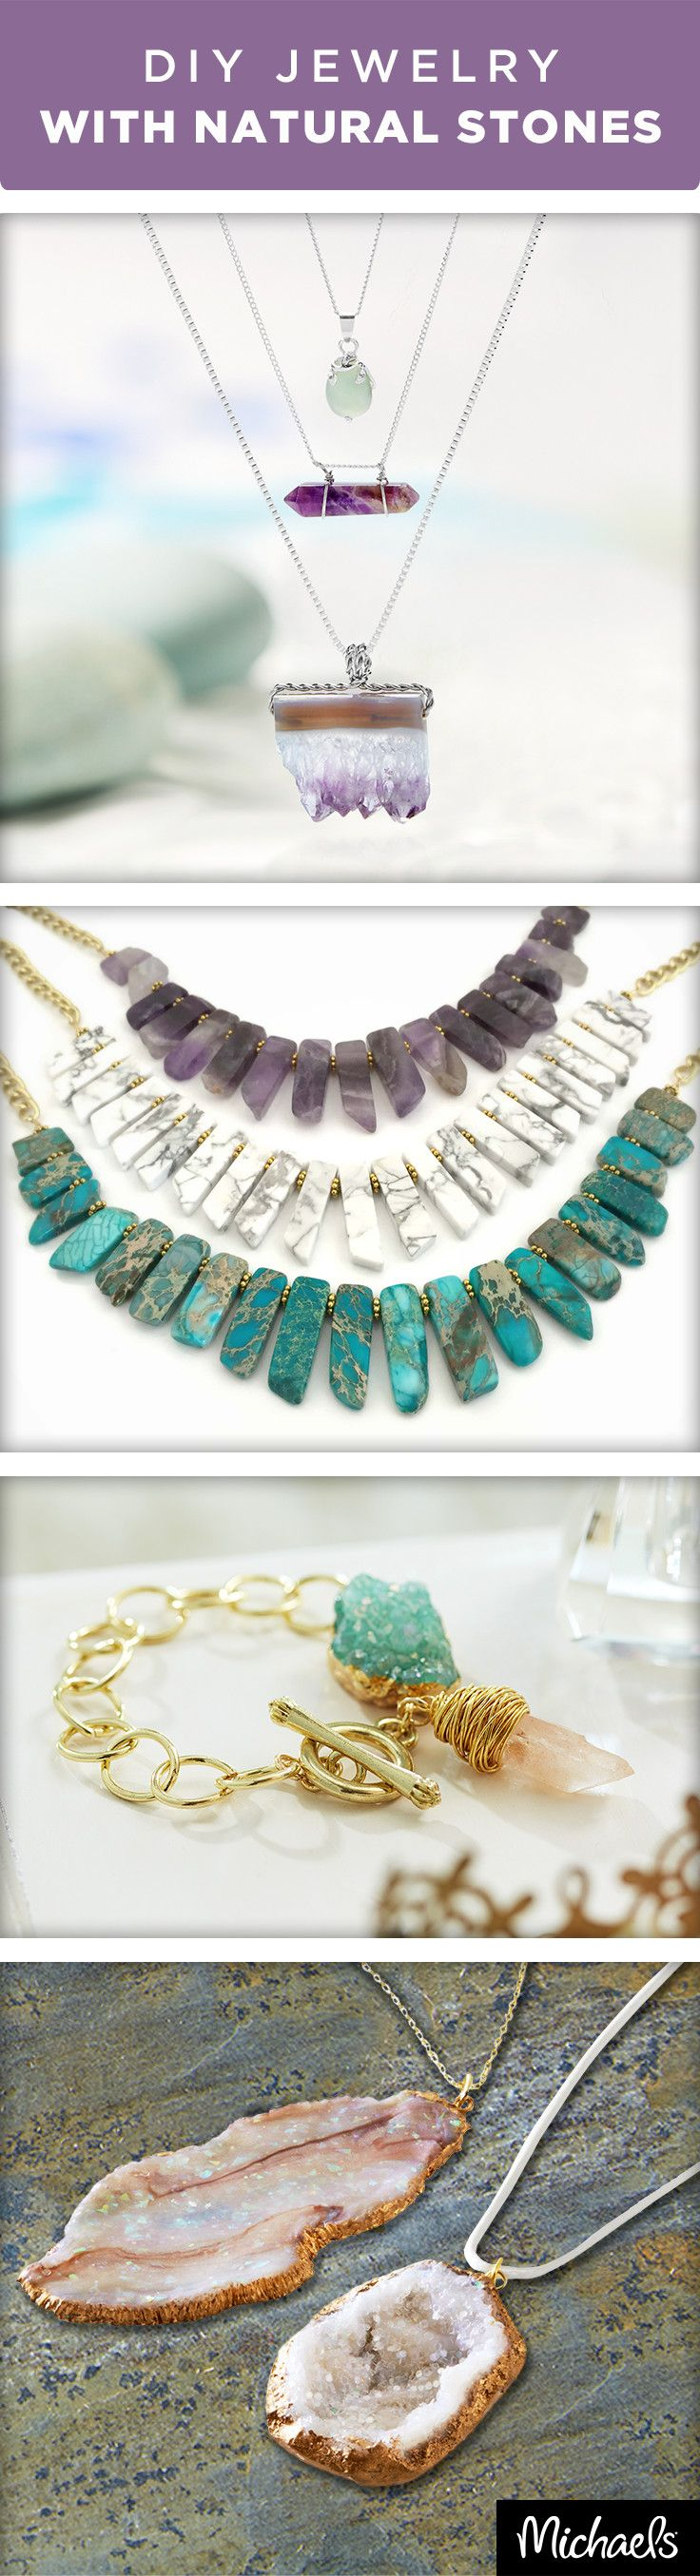 Natural Stone Jewelry Natural Stone Jewelry How To Make Necklaces Jewelry Projects